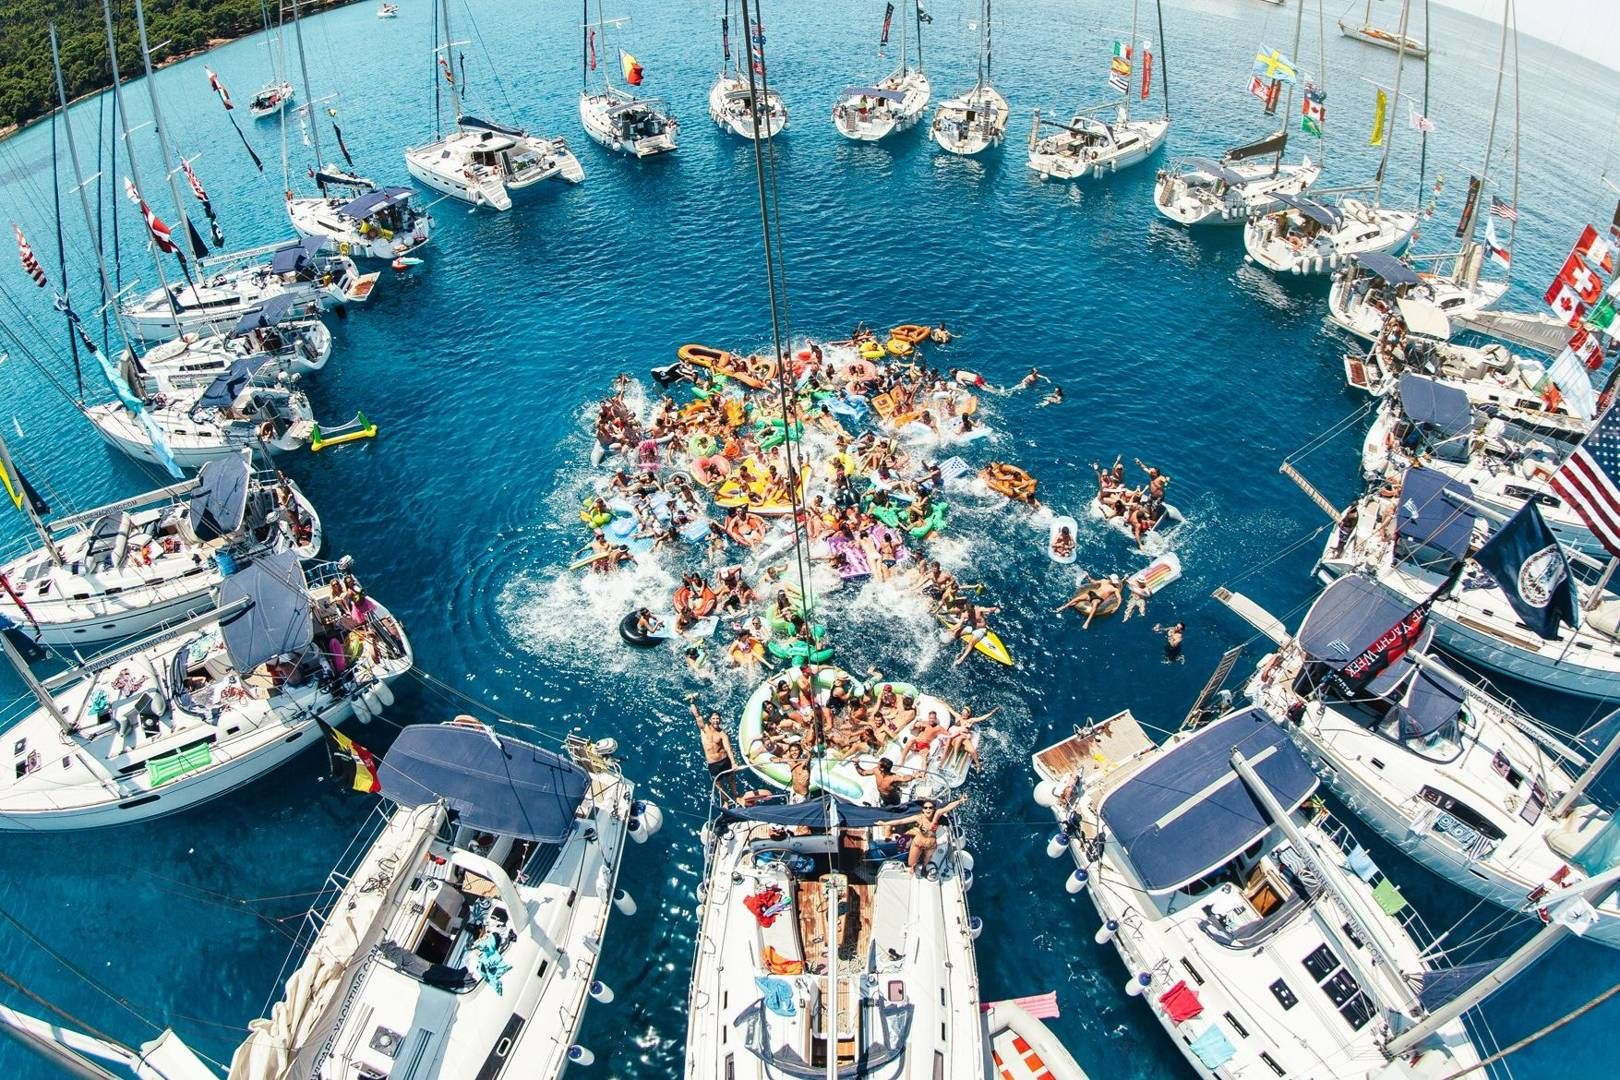 THE YACHT WEEK ULTRA EUROPE FESTIVAL #FyreProofFestival #inspiration  #cleverishmagazine #quarterlifecrisis #creativity #creativ… | Yacht week,  Trip, Croatia holiday